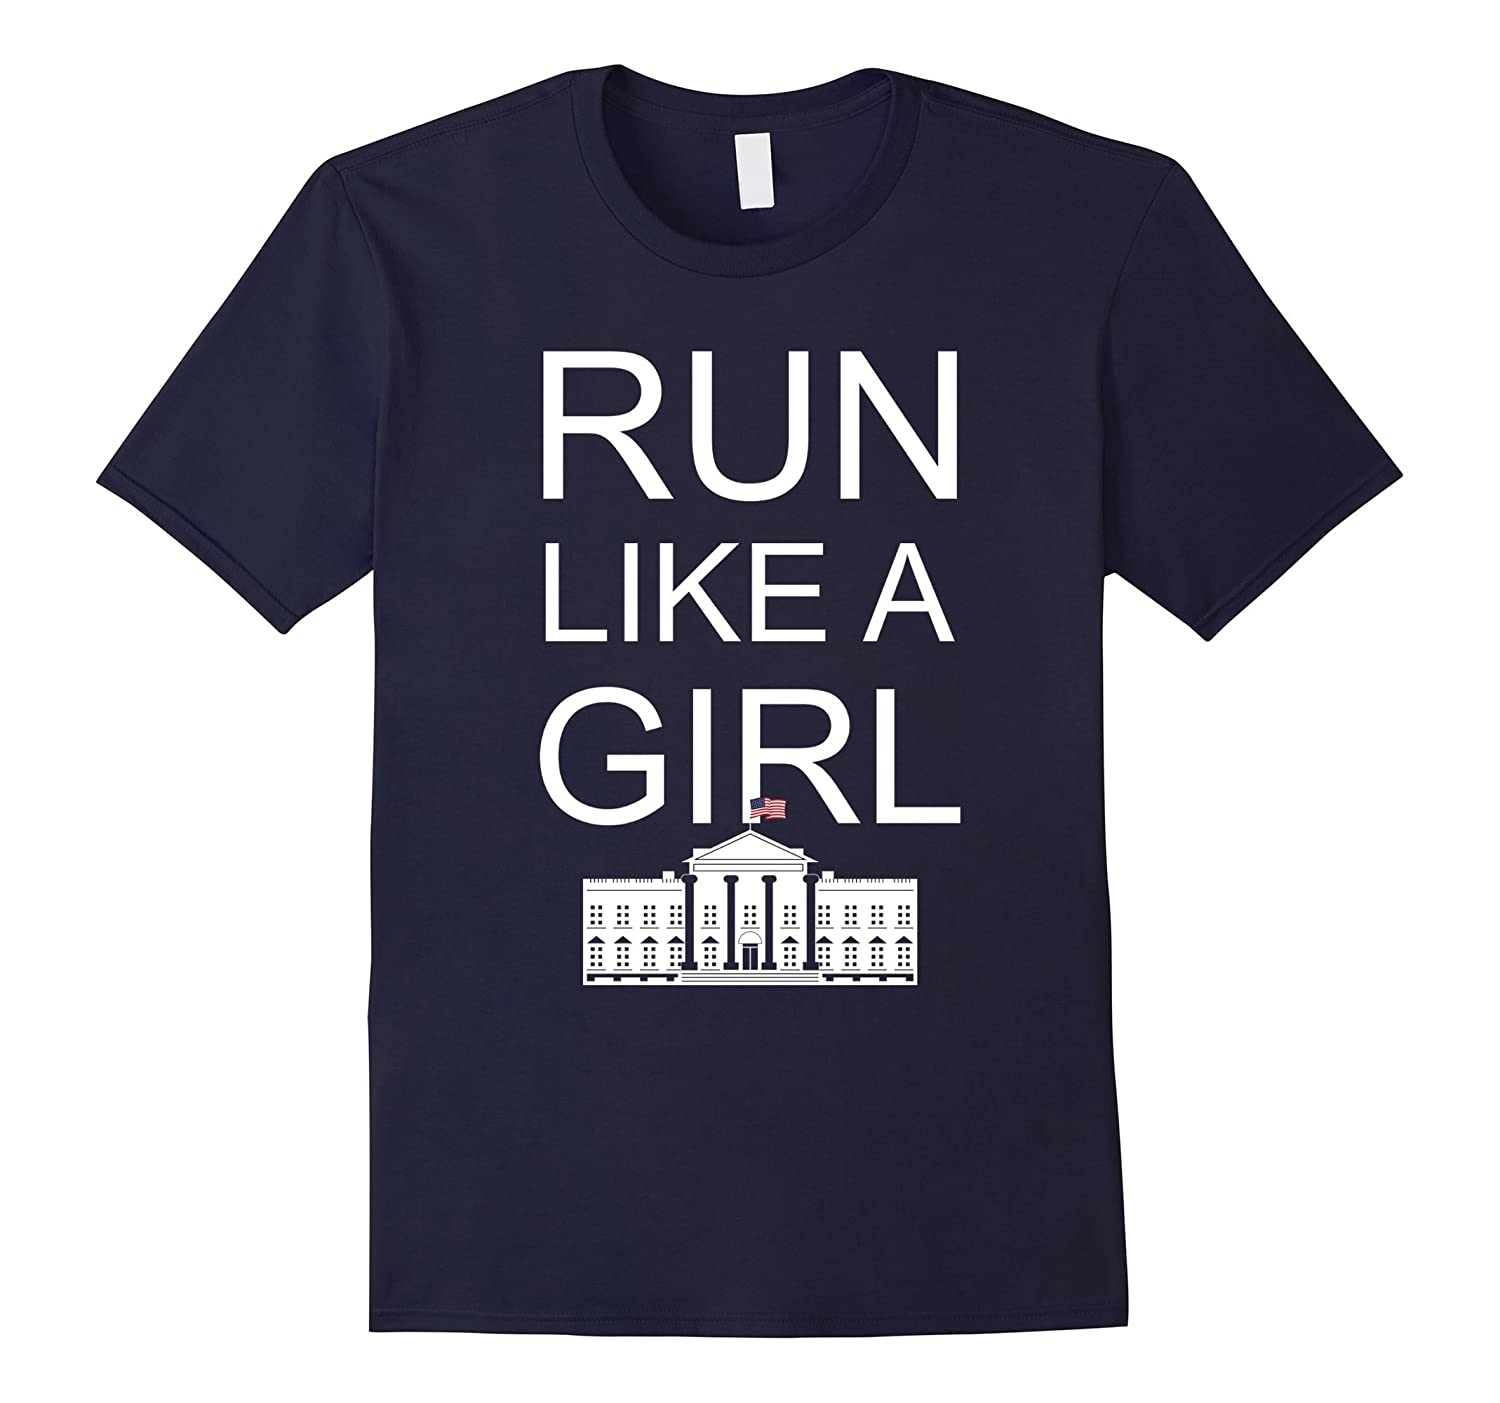 Run Like a Girl Hillary Clinton T-shirt-TD